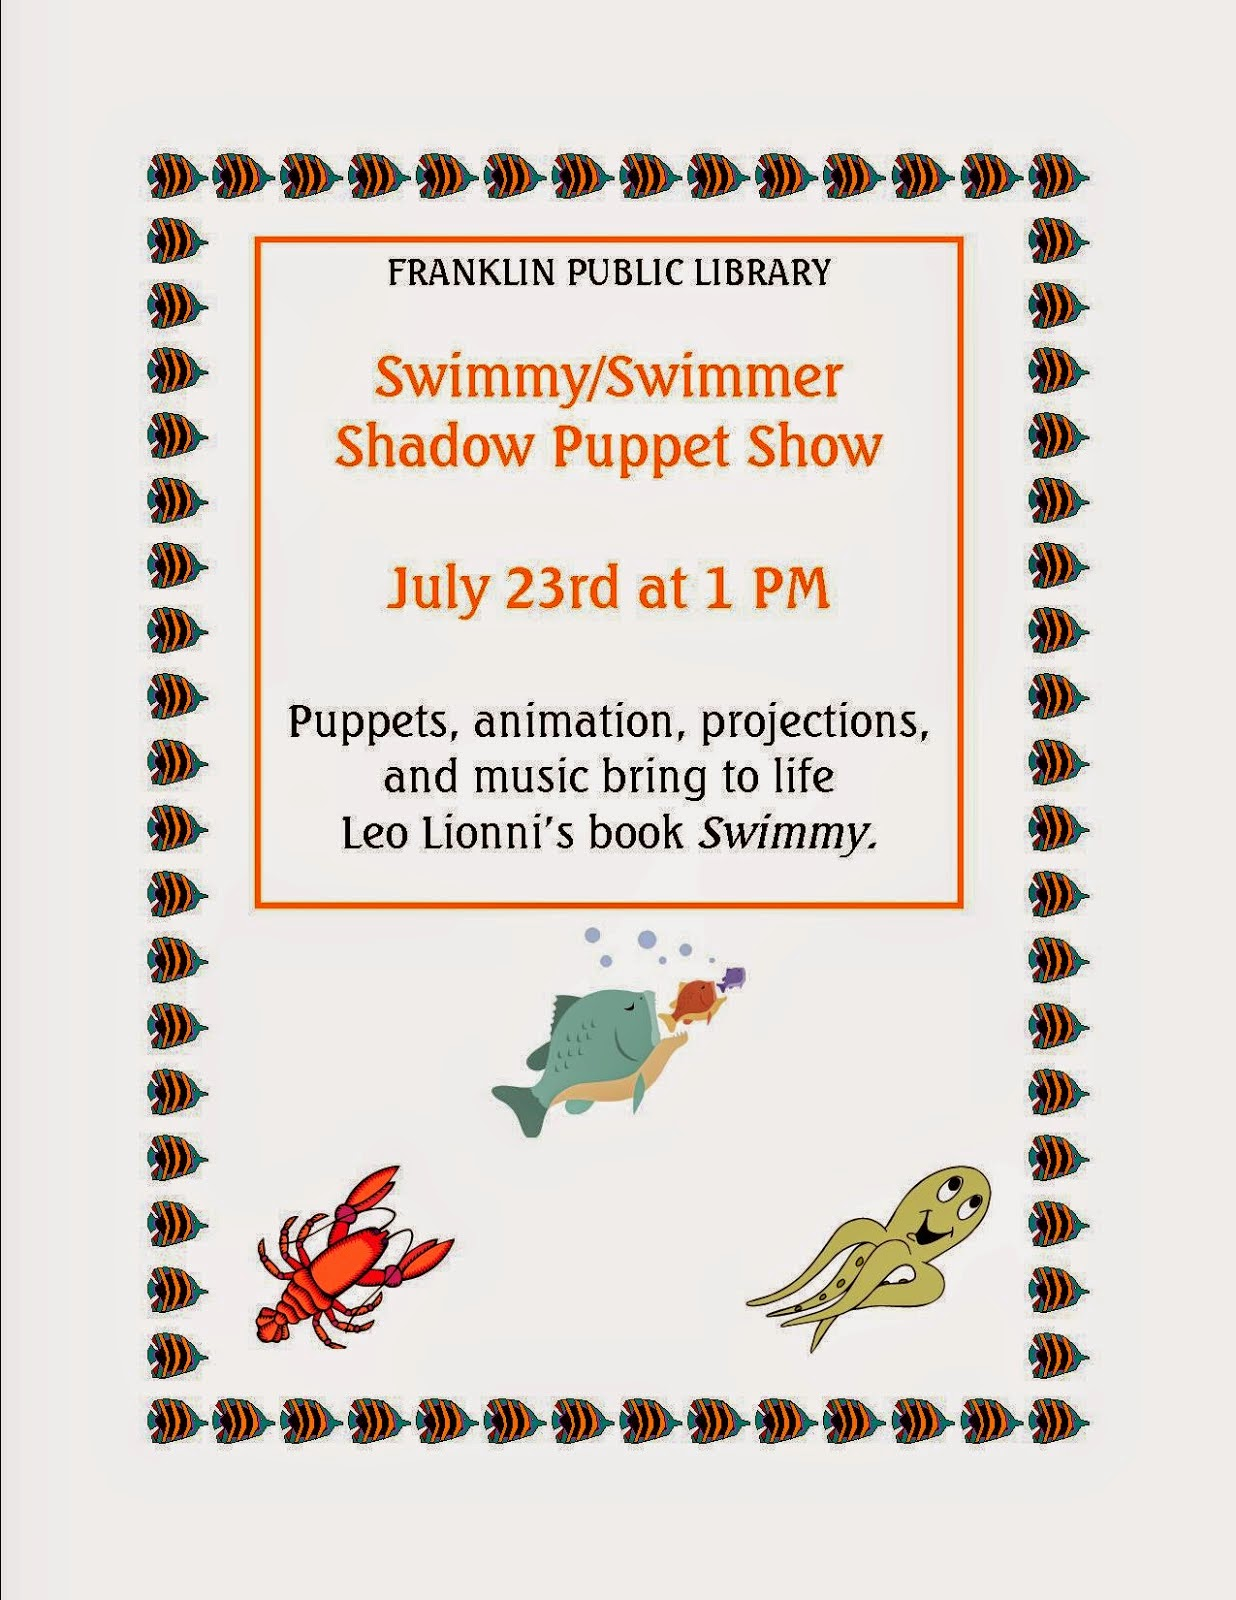 shadow puppet show - July 23  1:00 PM